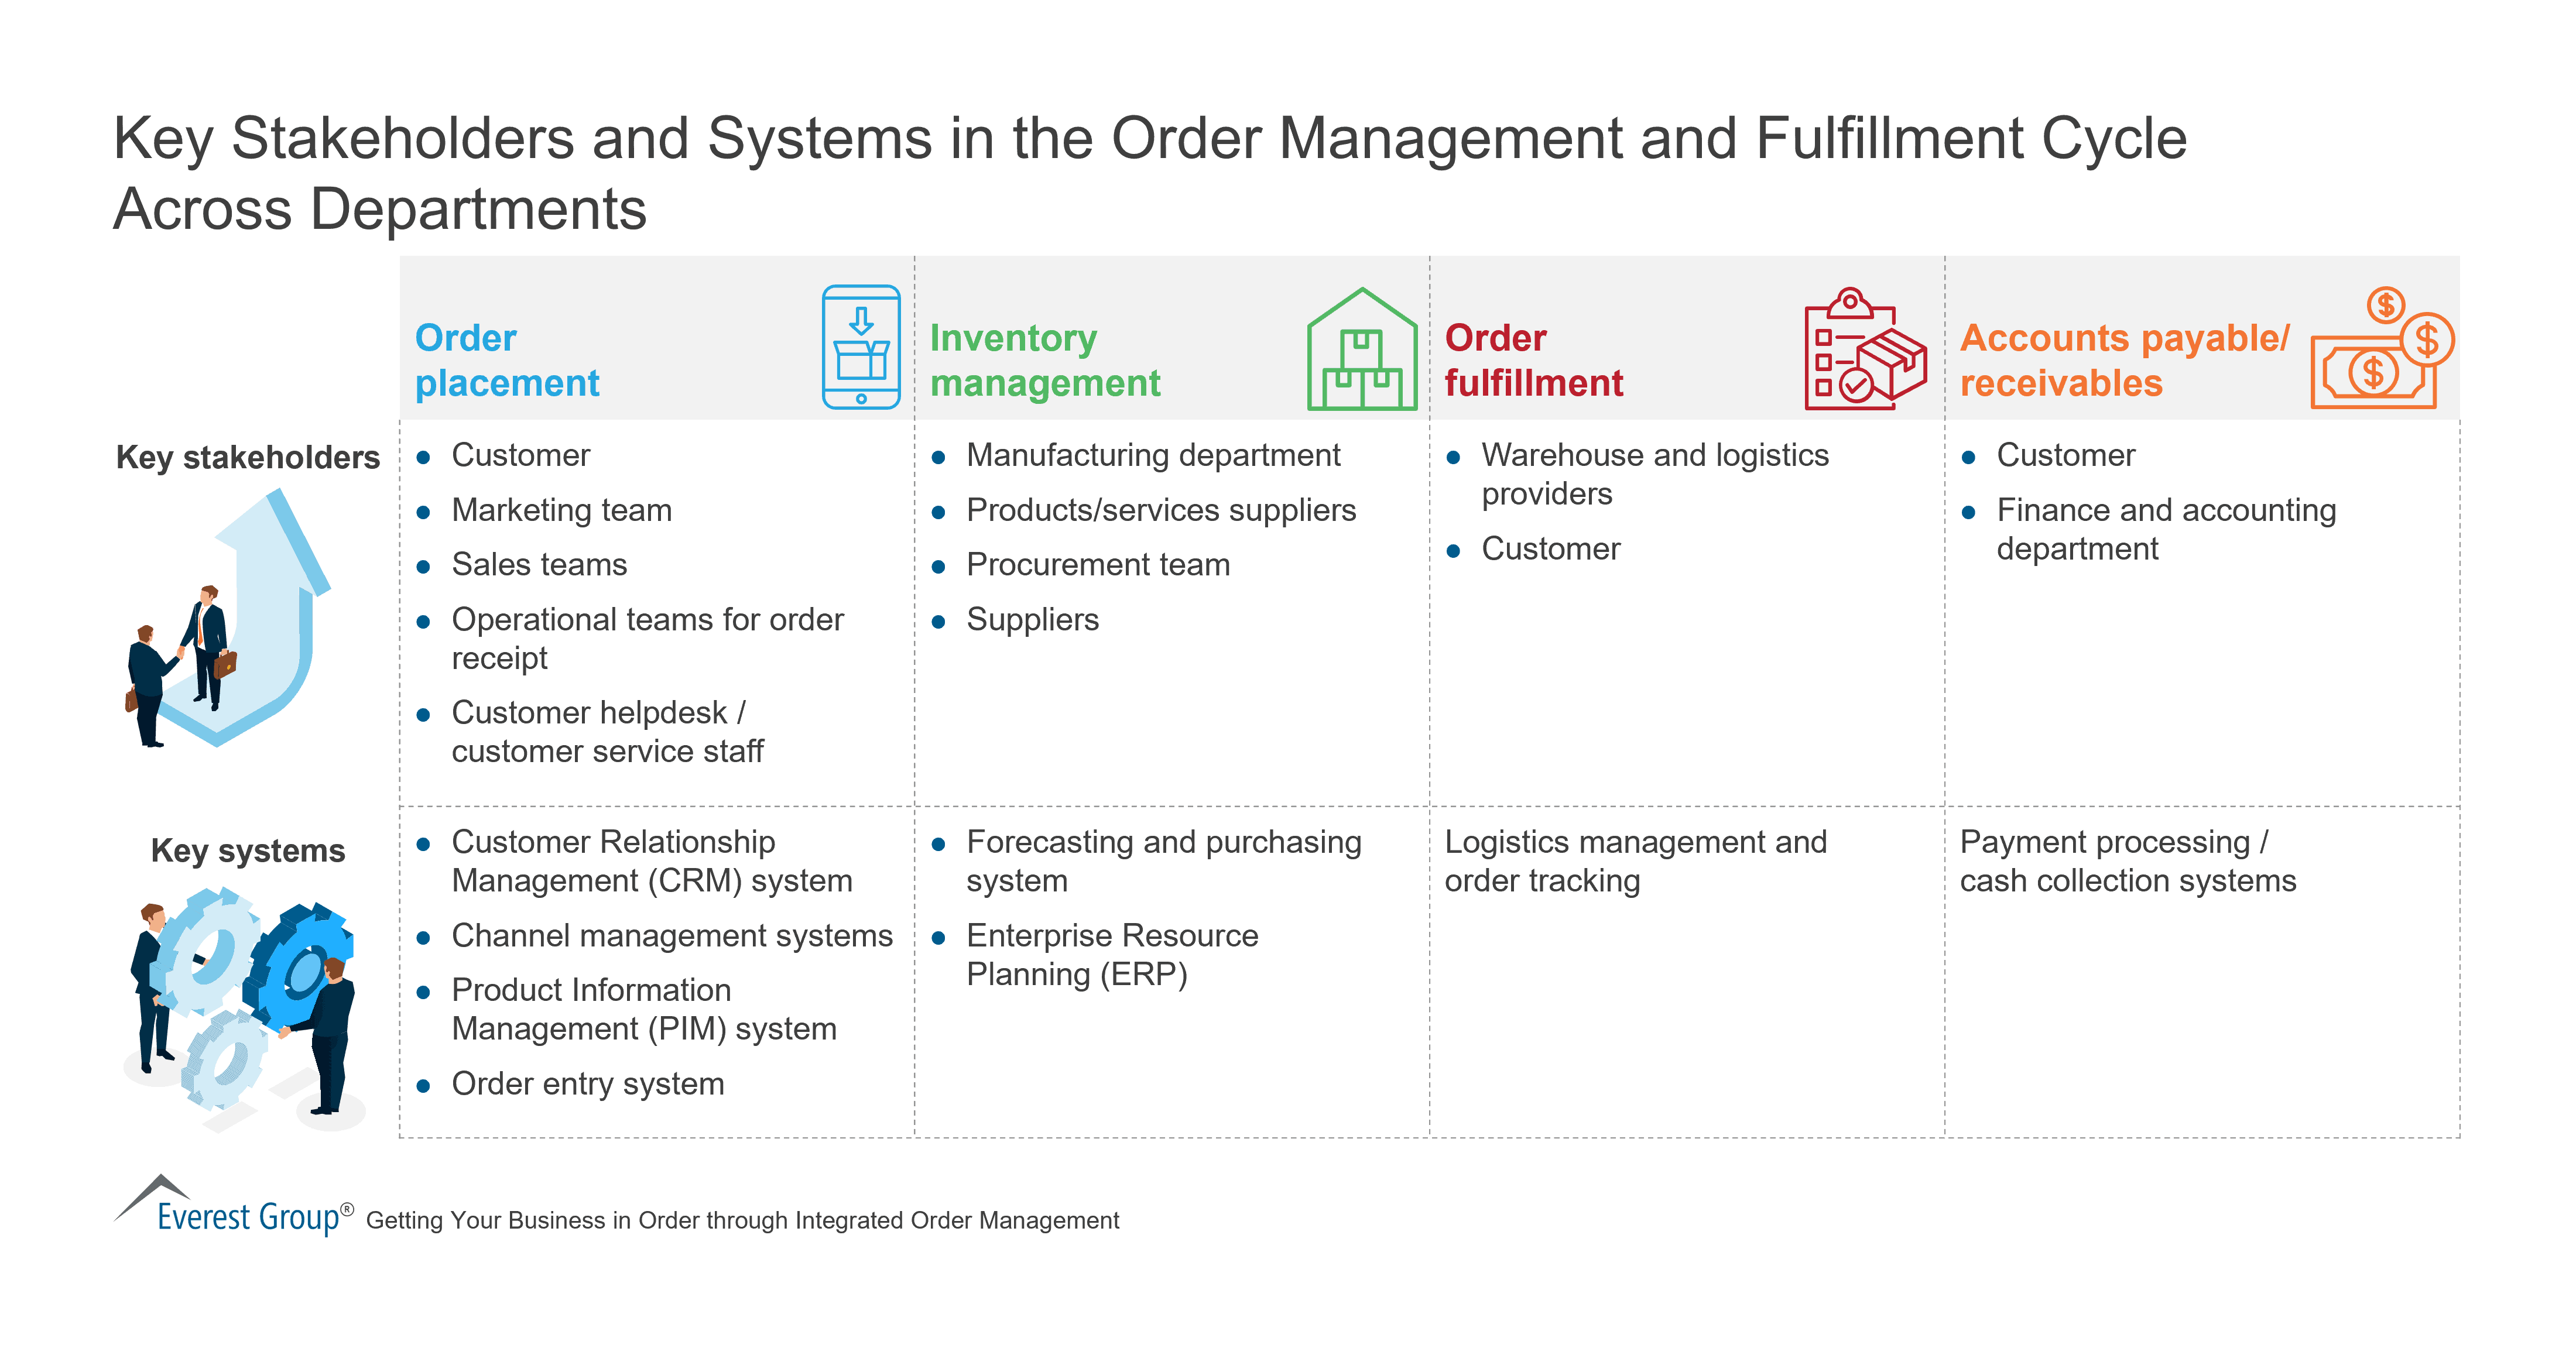 Key Stakeholders and Systems in the Order Management and Fulfillment Cycle Across Departments